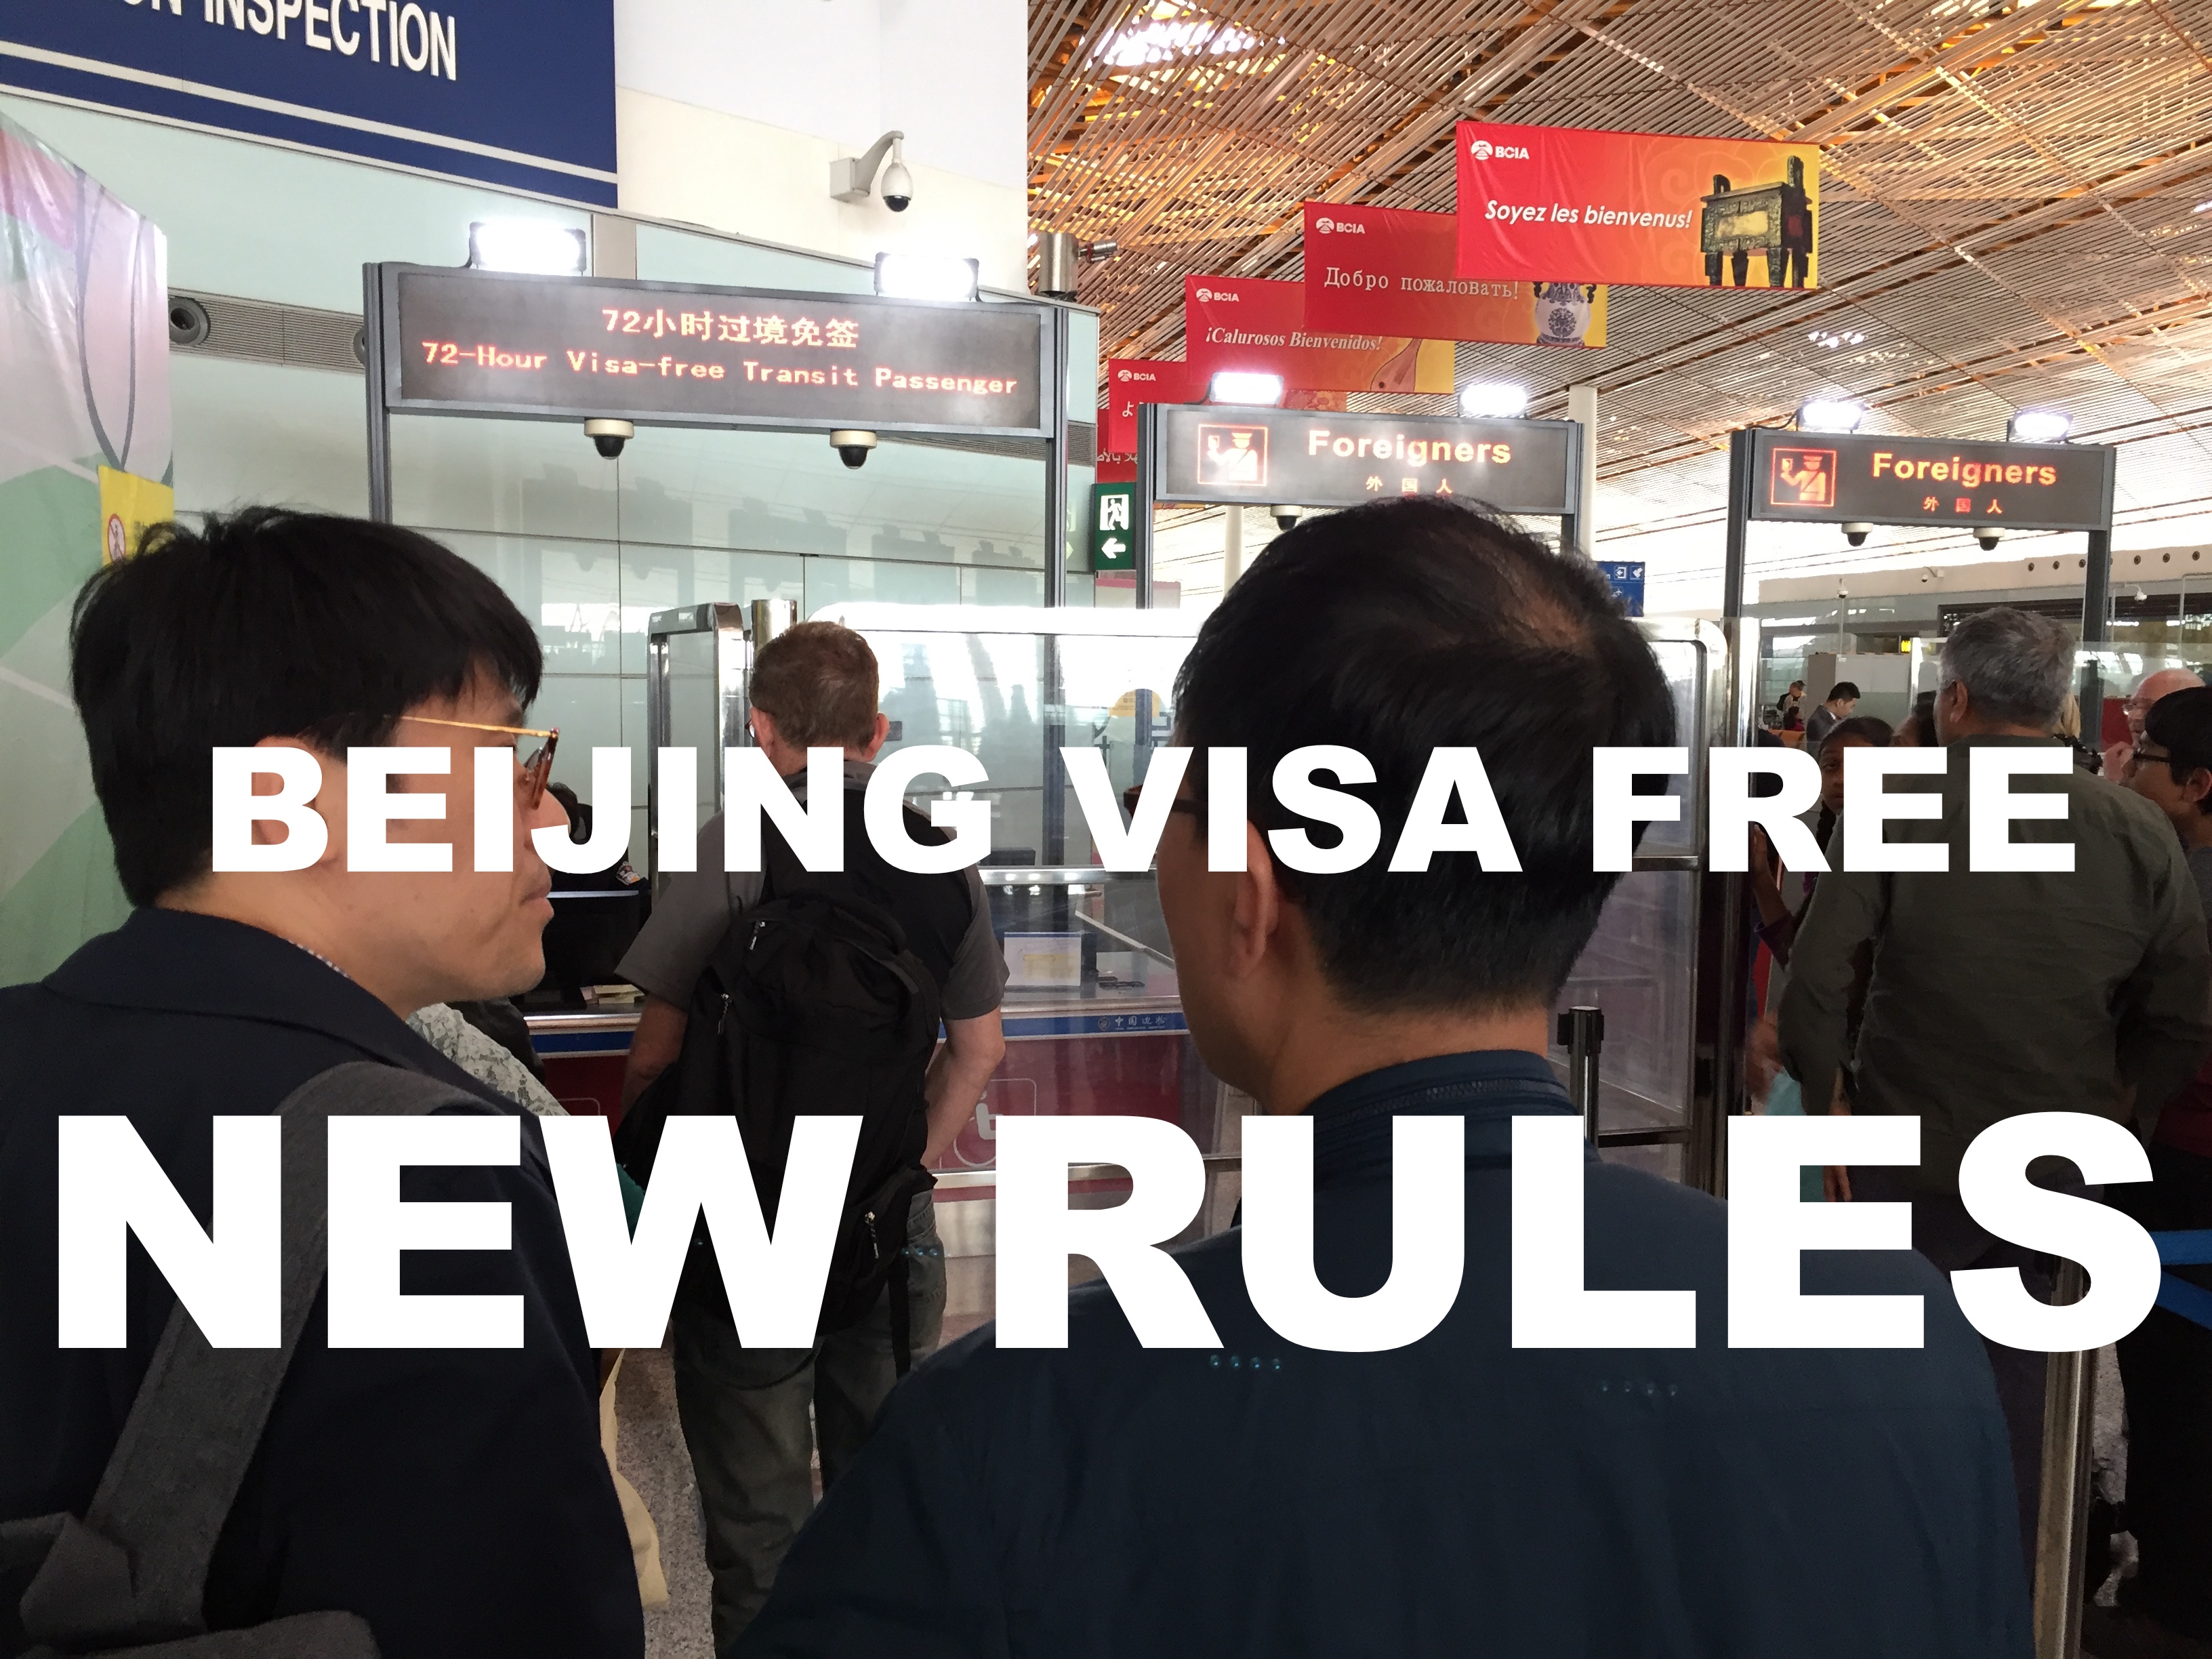 New Regulations For 72 Hour Visa Free Transit In Beijing ... on application meaning in science, application to be my boyfriend, application to date my son, application to join a club, application insights, application error, application template, application for scholarship sample, application to join motorcycle club, application to rent california, application service provider, application approved, application trial, application for rental, application for employment, application in spanish, application database diagram, application cartoon, application submitted, application clip art,